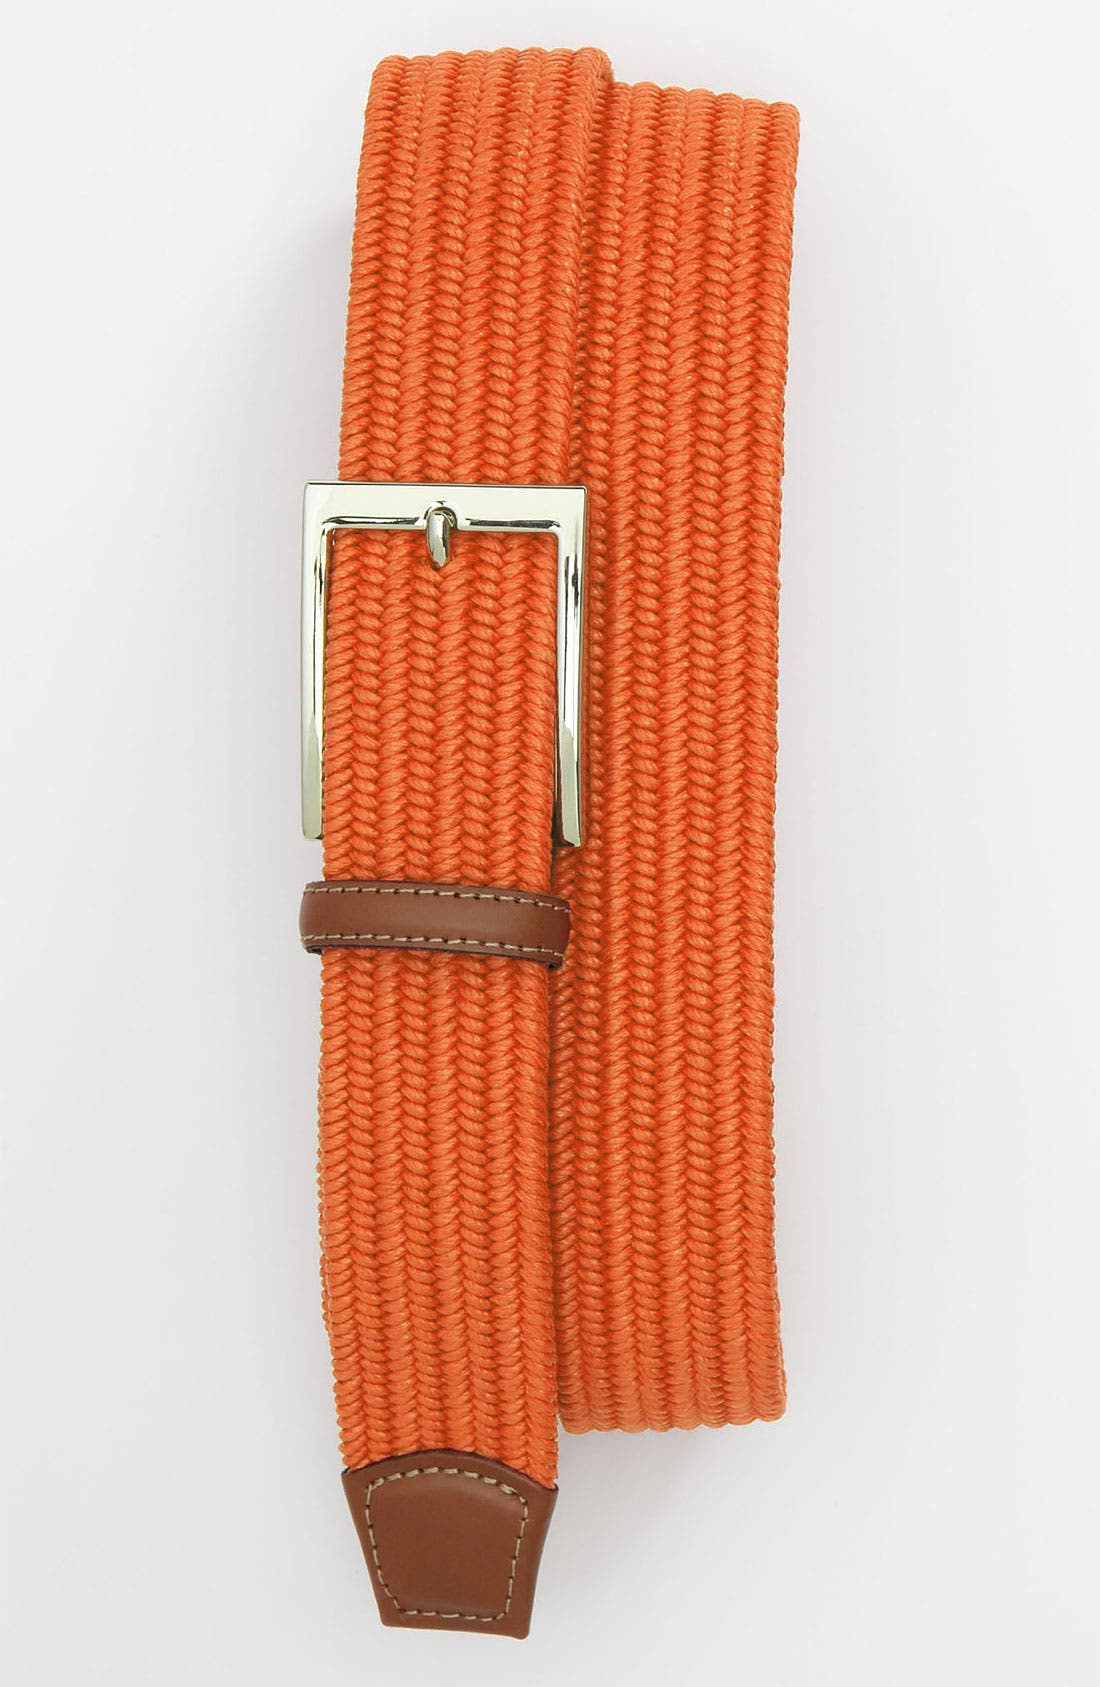 Alternate Image 1 Selected - Torino Belts Cotton Belt